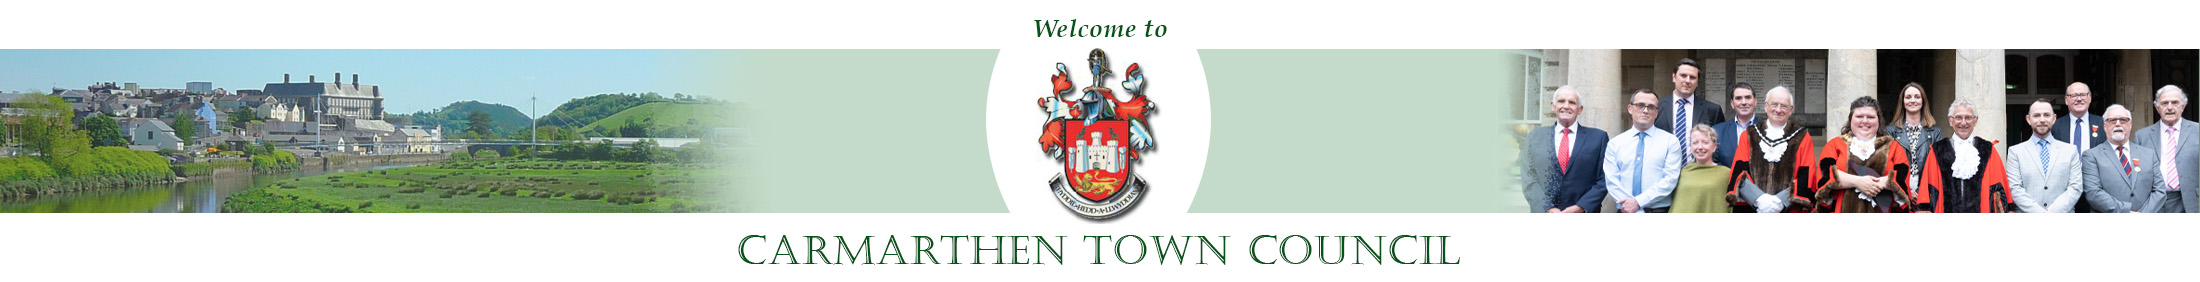 Header Image for Carmarthen Town Council